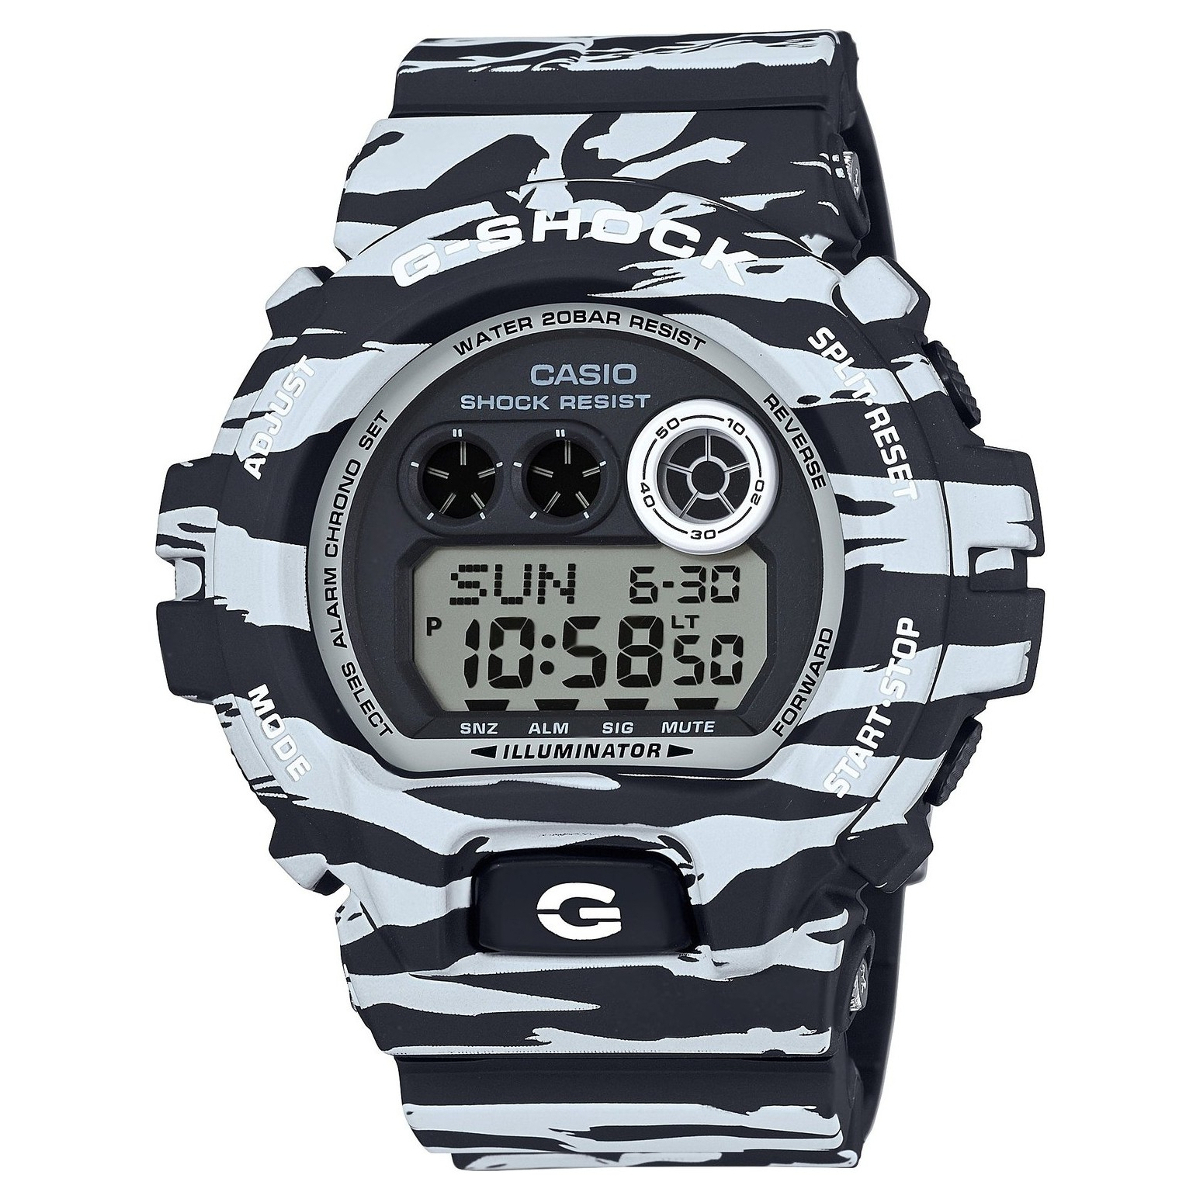 Фото - Casio G-shock GD-X6900BW-1E casio gd x6900bw 1e